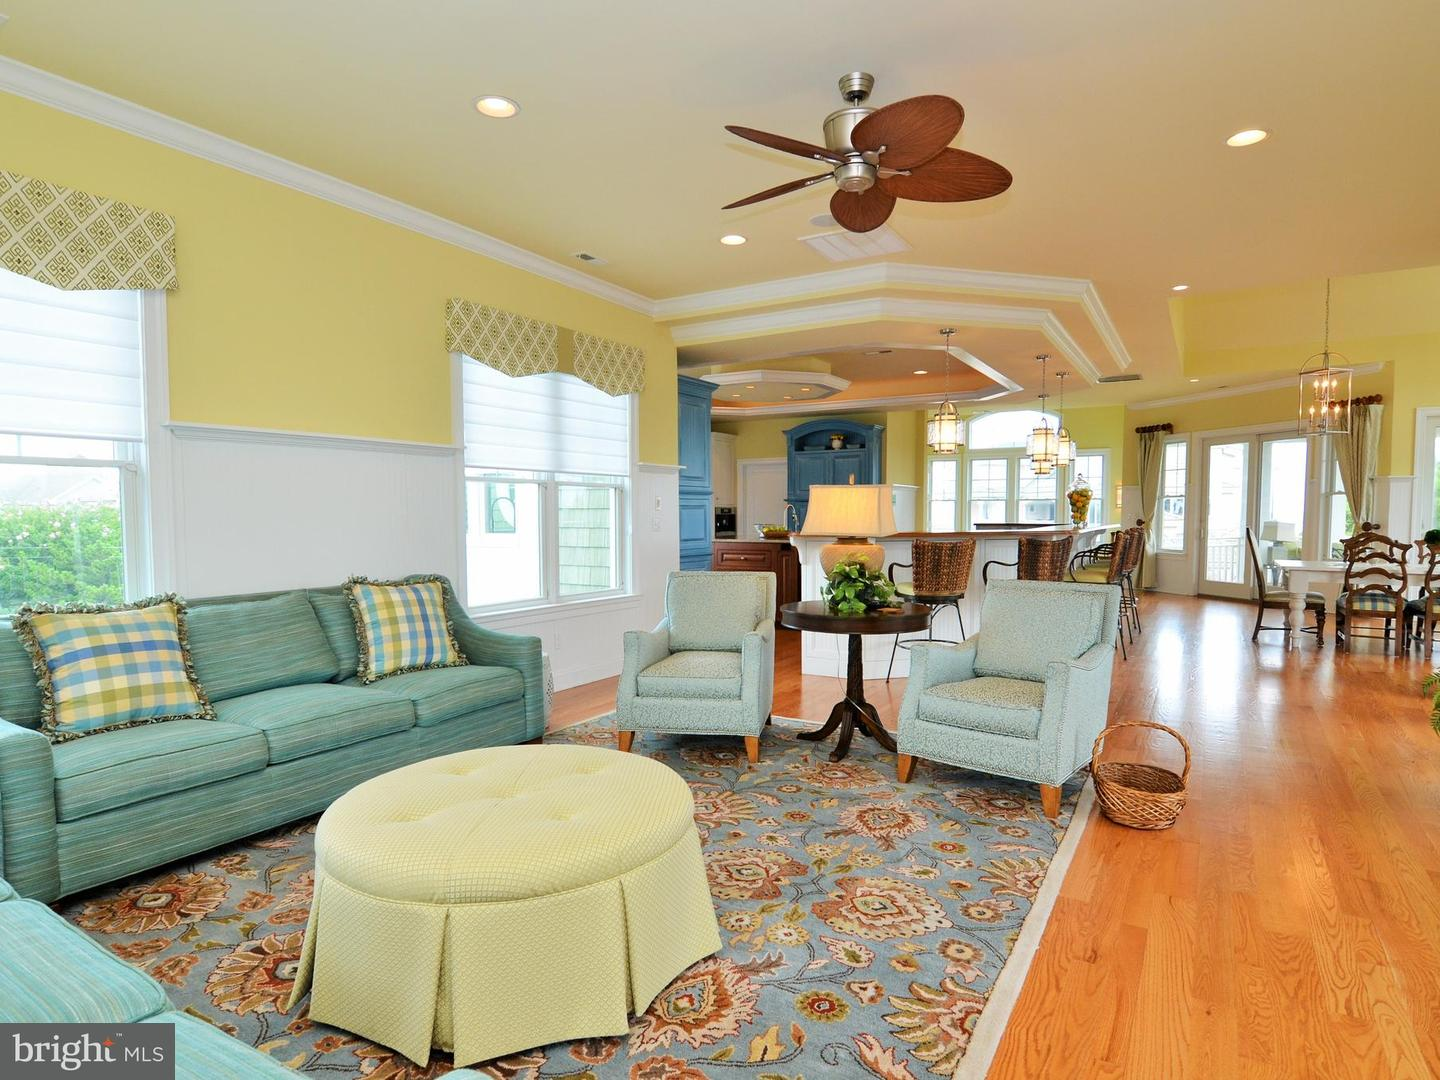 1002293530-300500810107-2018-09-25-15-08-25 31 Hall Ave | Rehoboth Beach, De Real Estate For Sale | MLS# 1002293530  - Suzanne Macnab